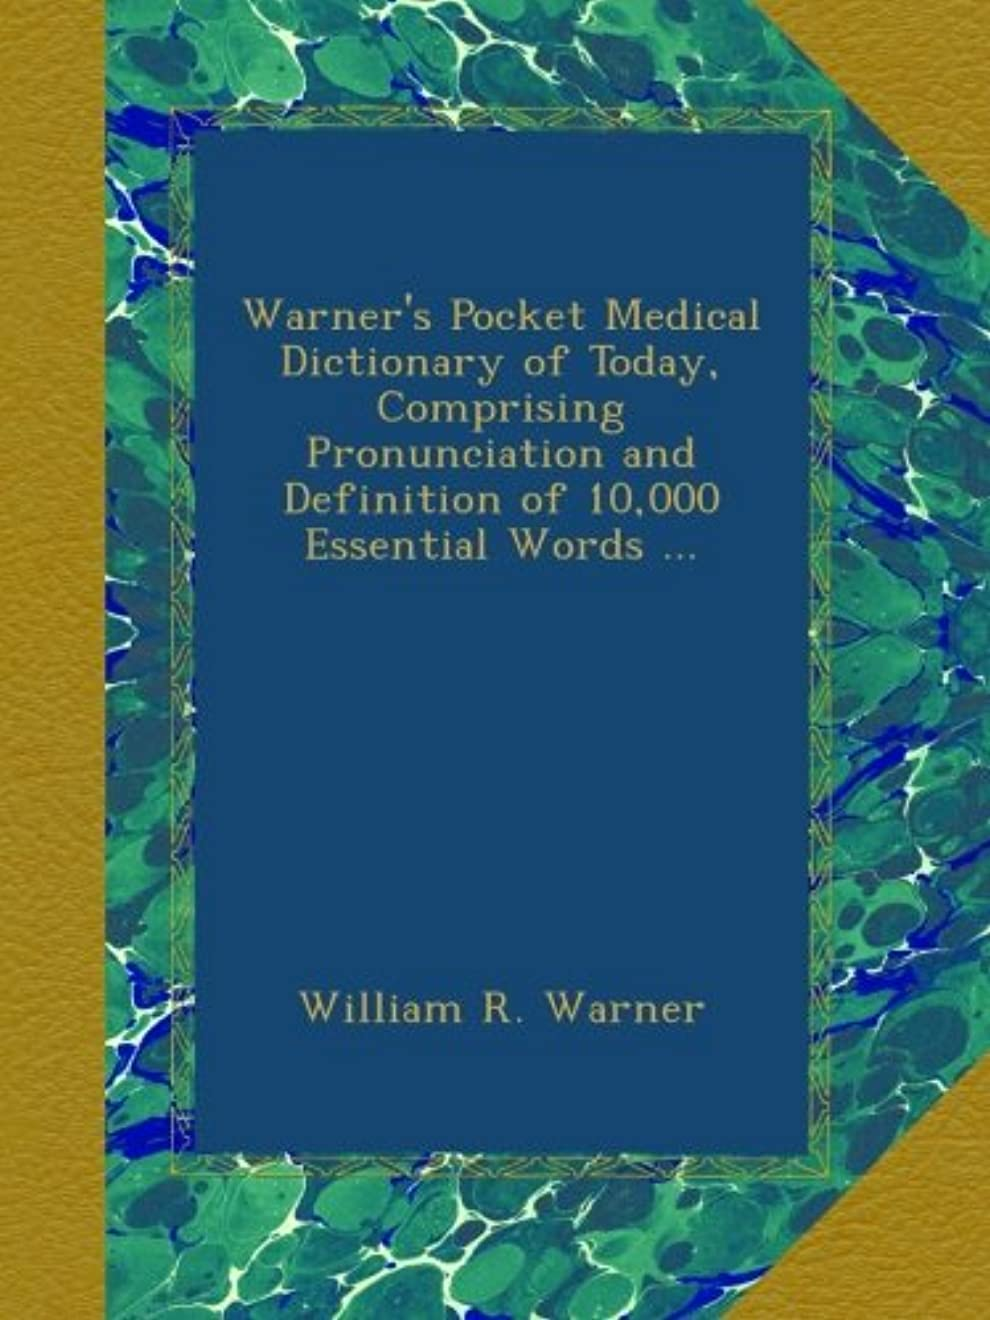 現象ホステル突進Warner's Pocket Medical Dictionary of Today, Comprising Pronunciation and Definition of 10,000 Essential Words ...